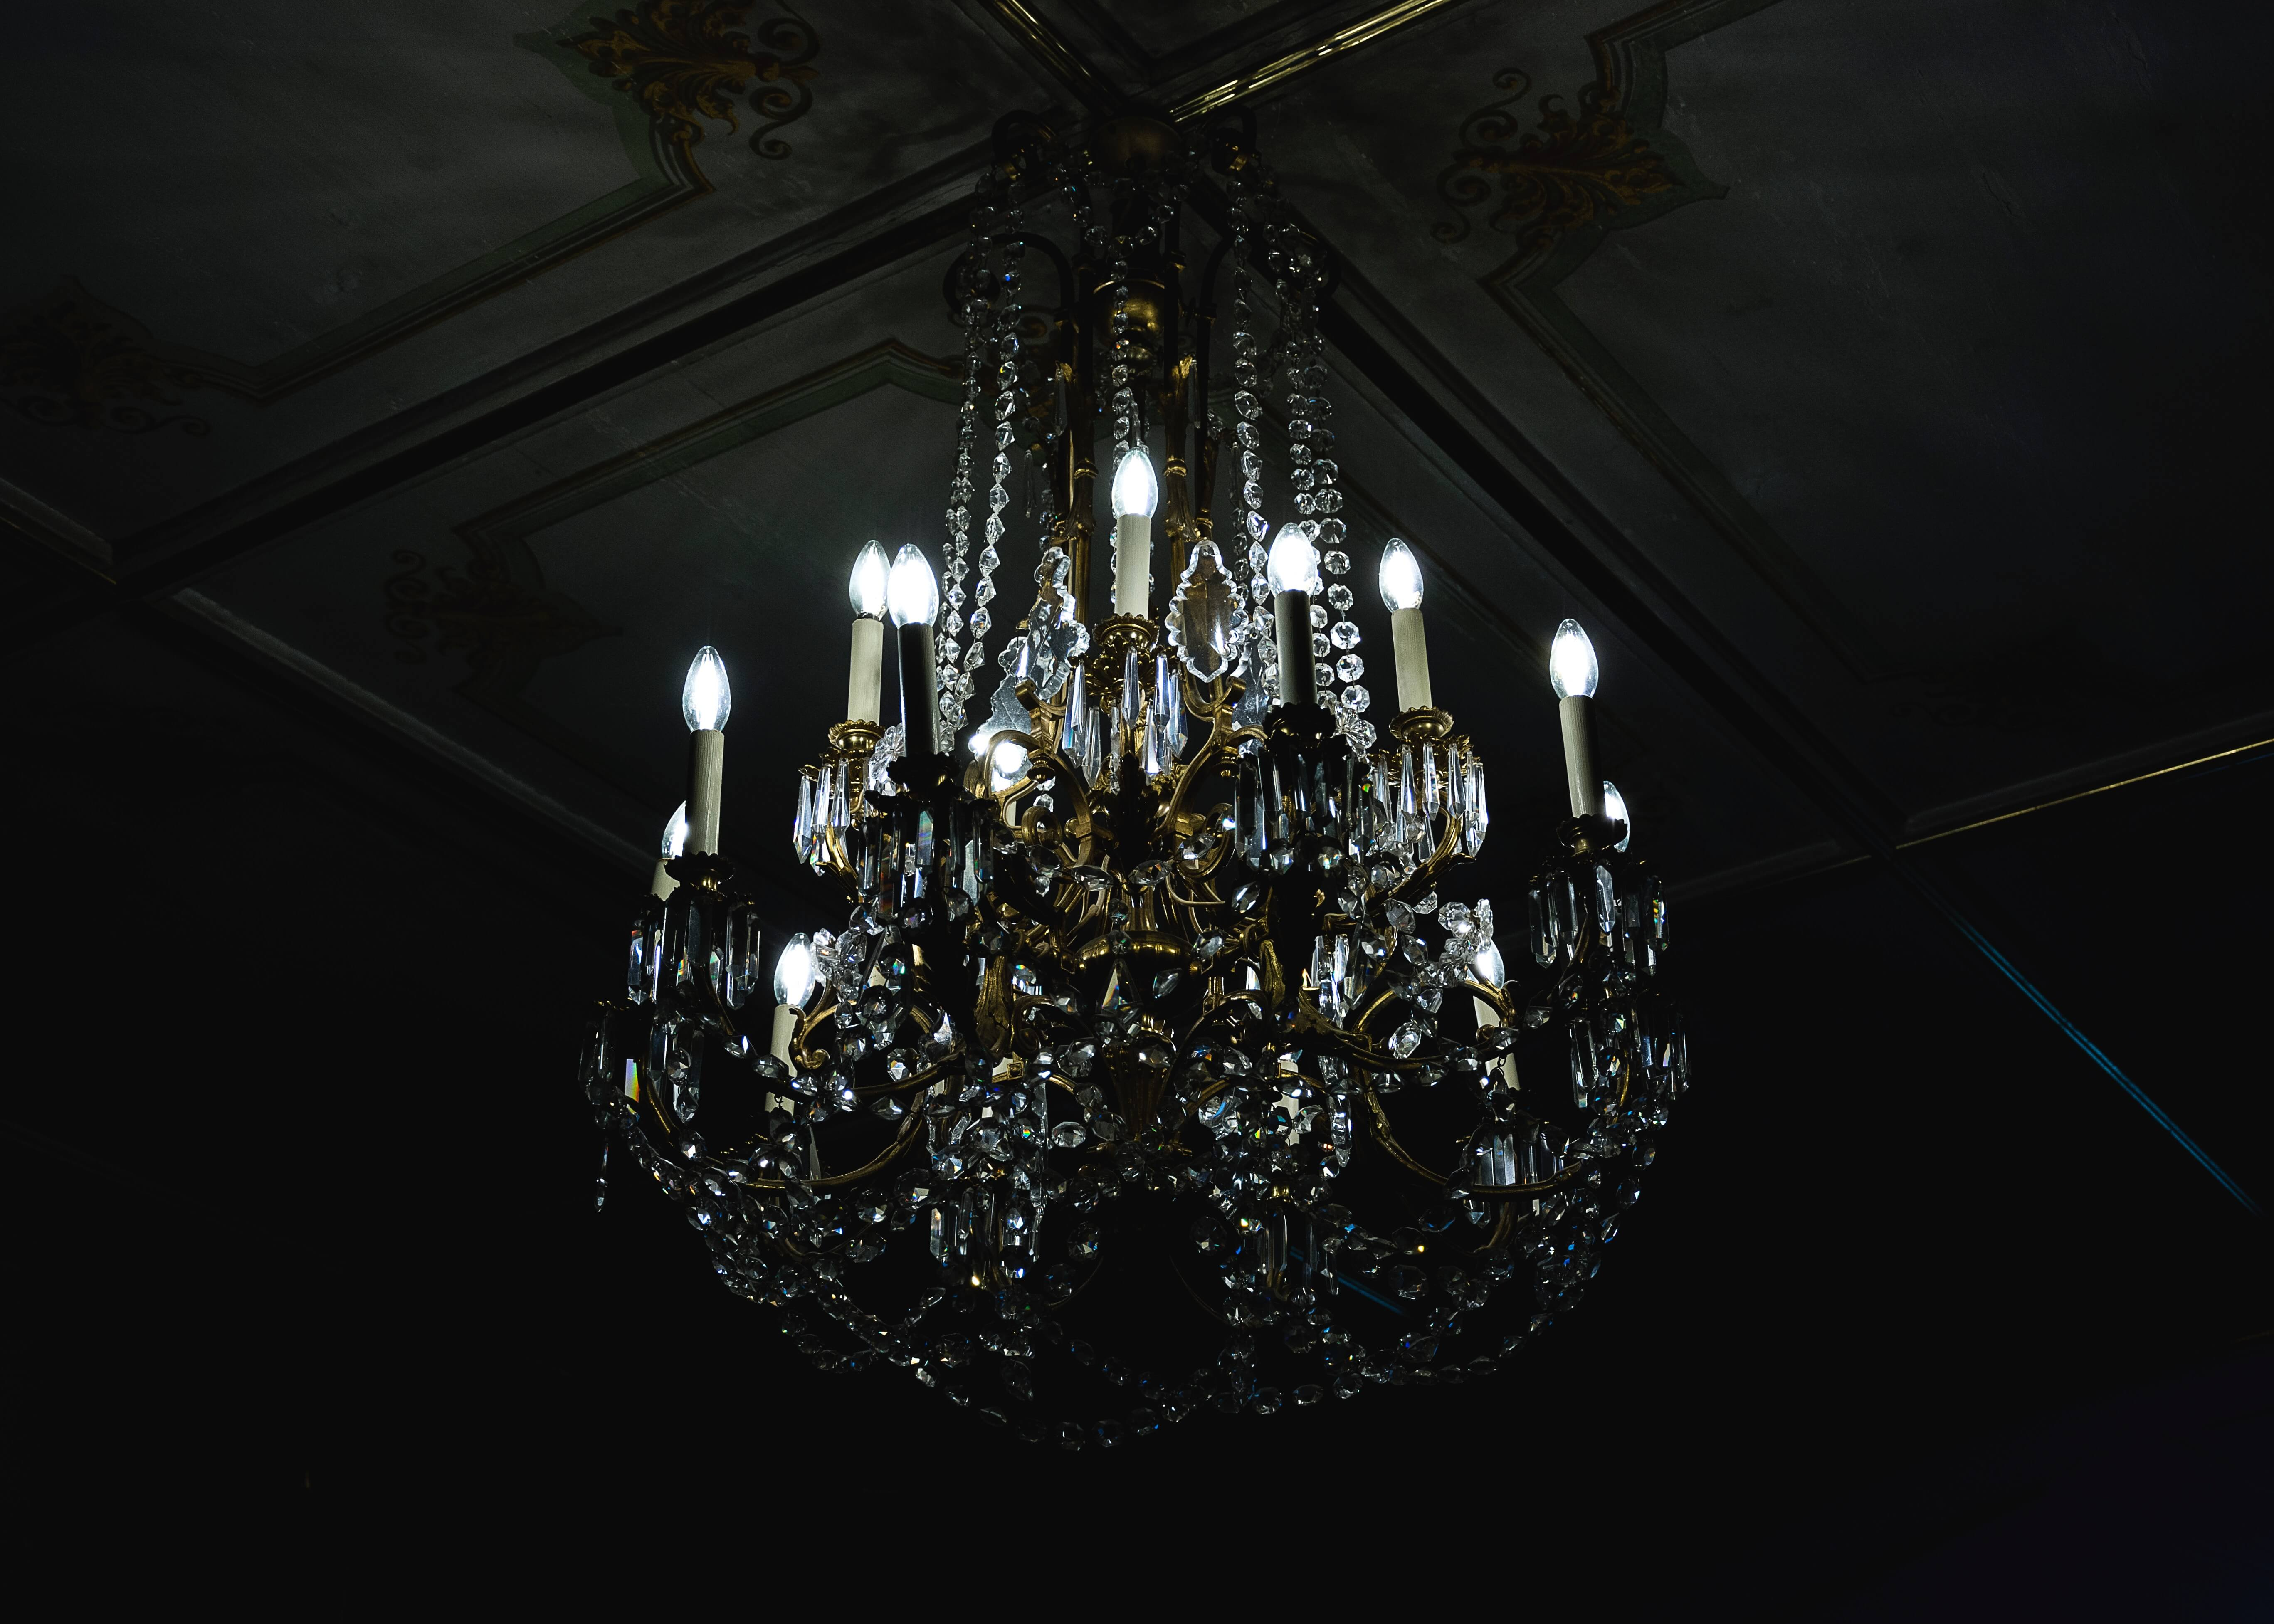 Chandeliers   Browse Our Selection Of Chandeliers   M   M Lighting How To Find The Right Chandelier Size